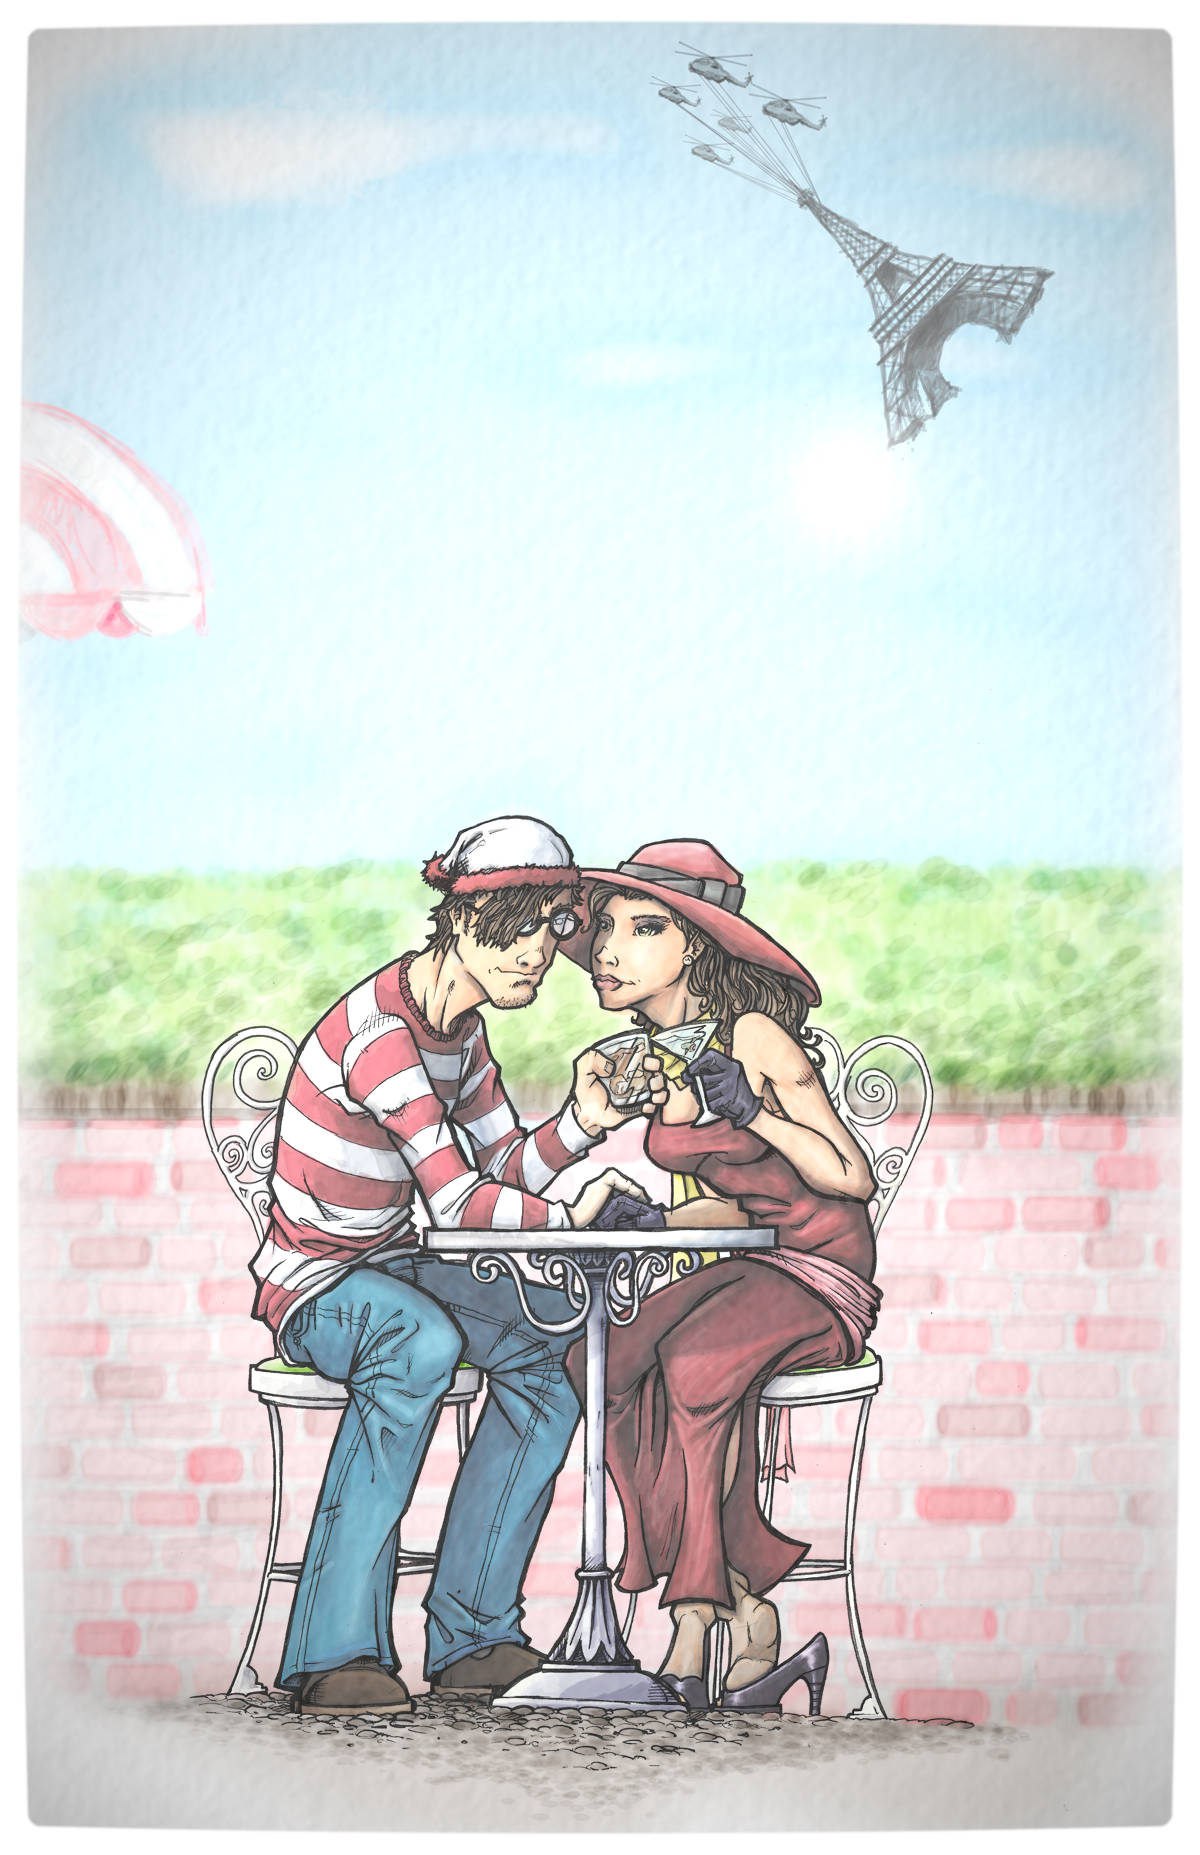 Vamers - Artistry - Carmen Sandiego and Where's Wally - A Perfectly Unfindable Match - Waldo Heart Carmen byInkycharland